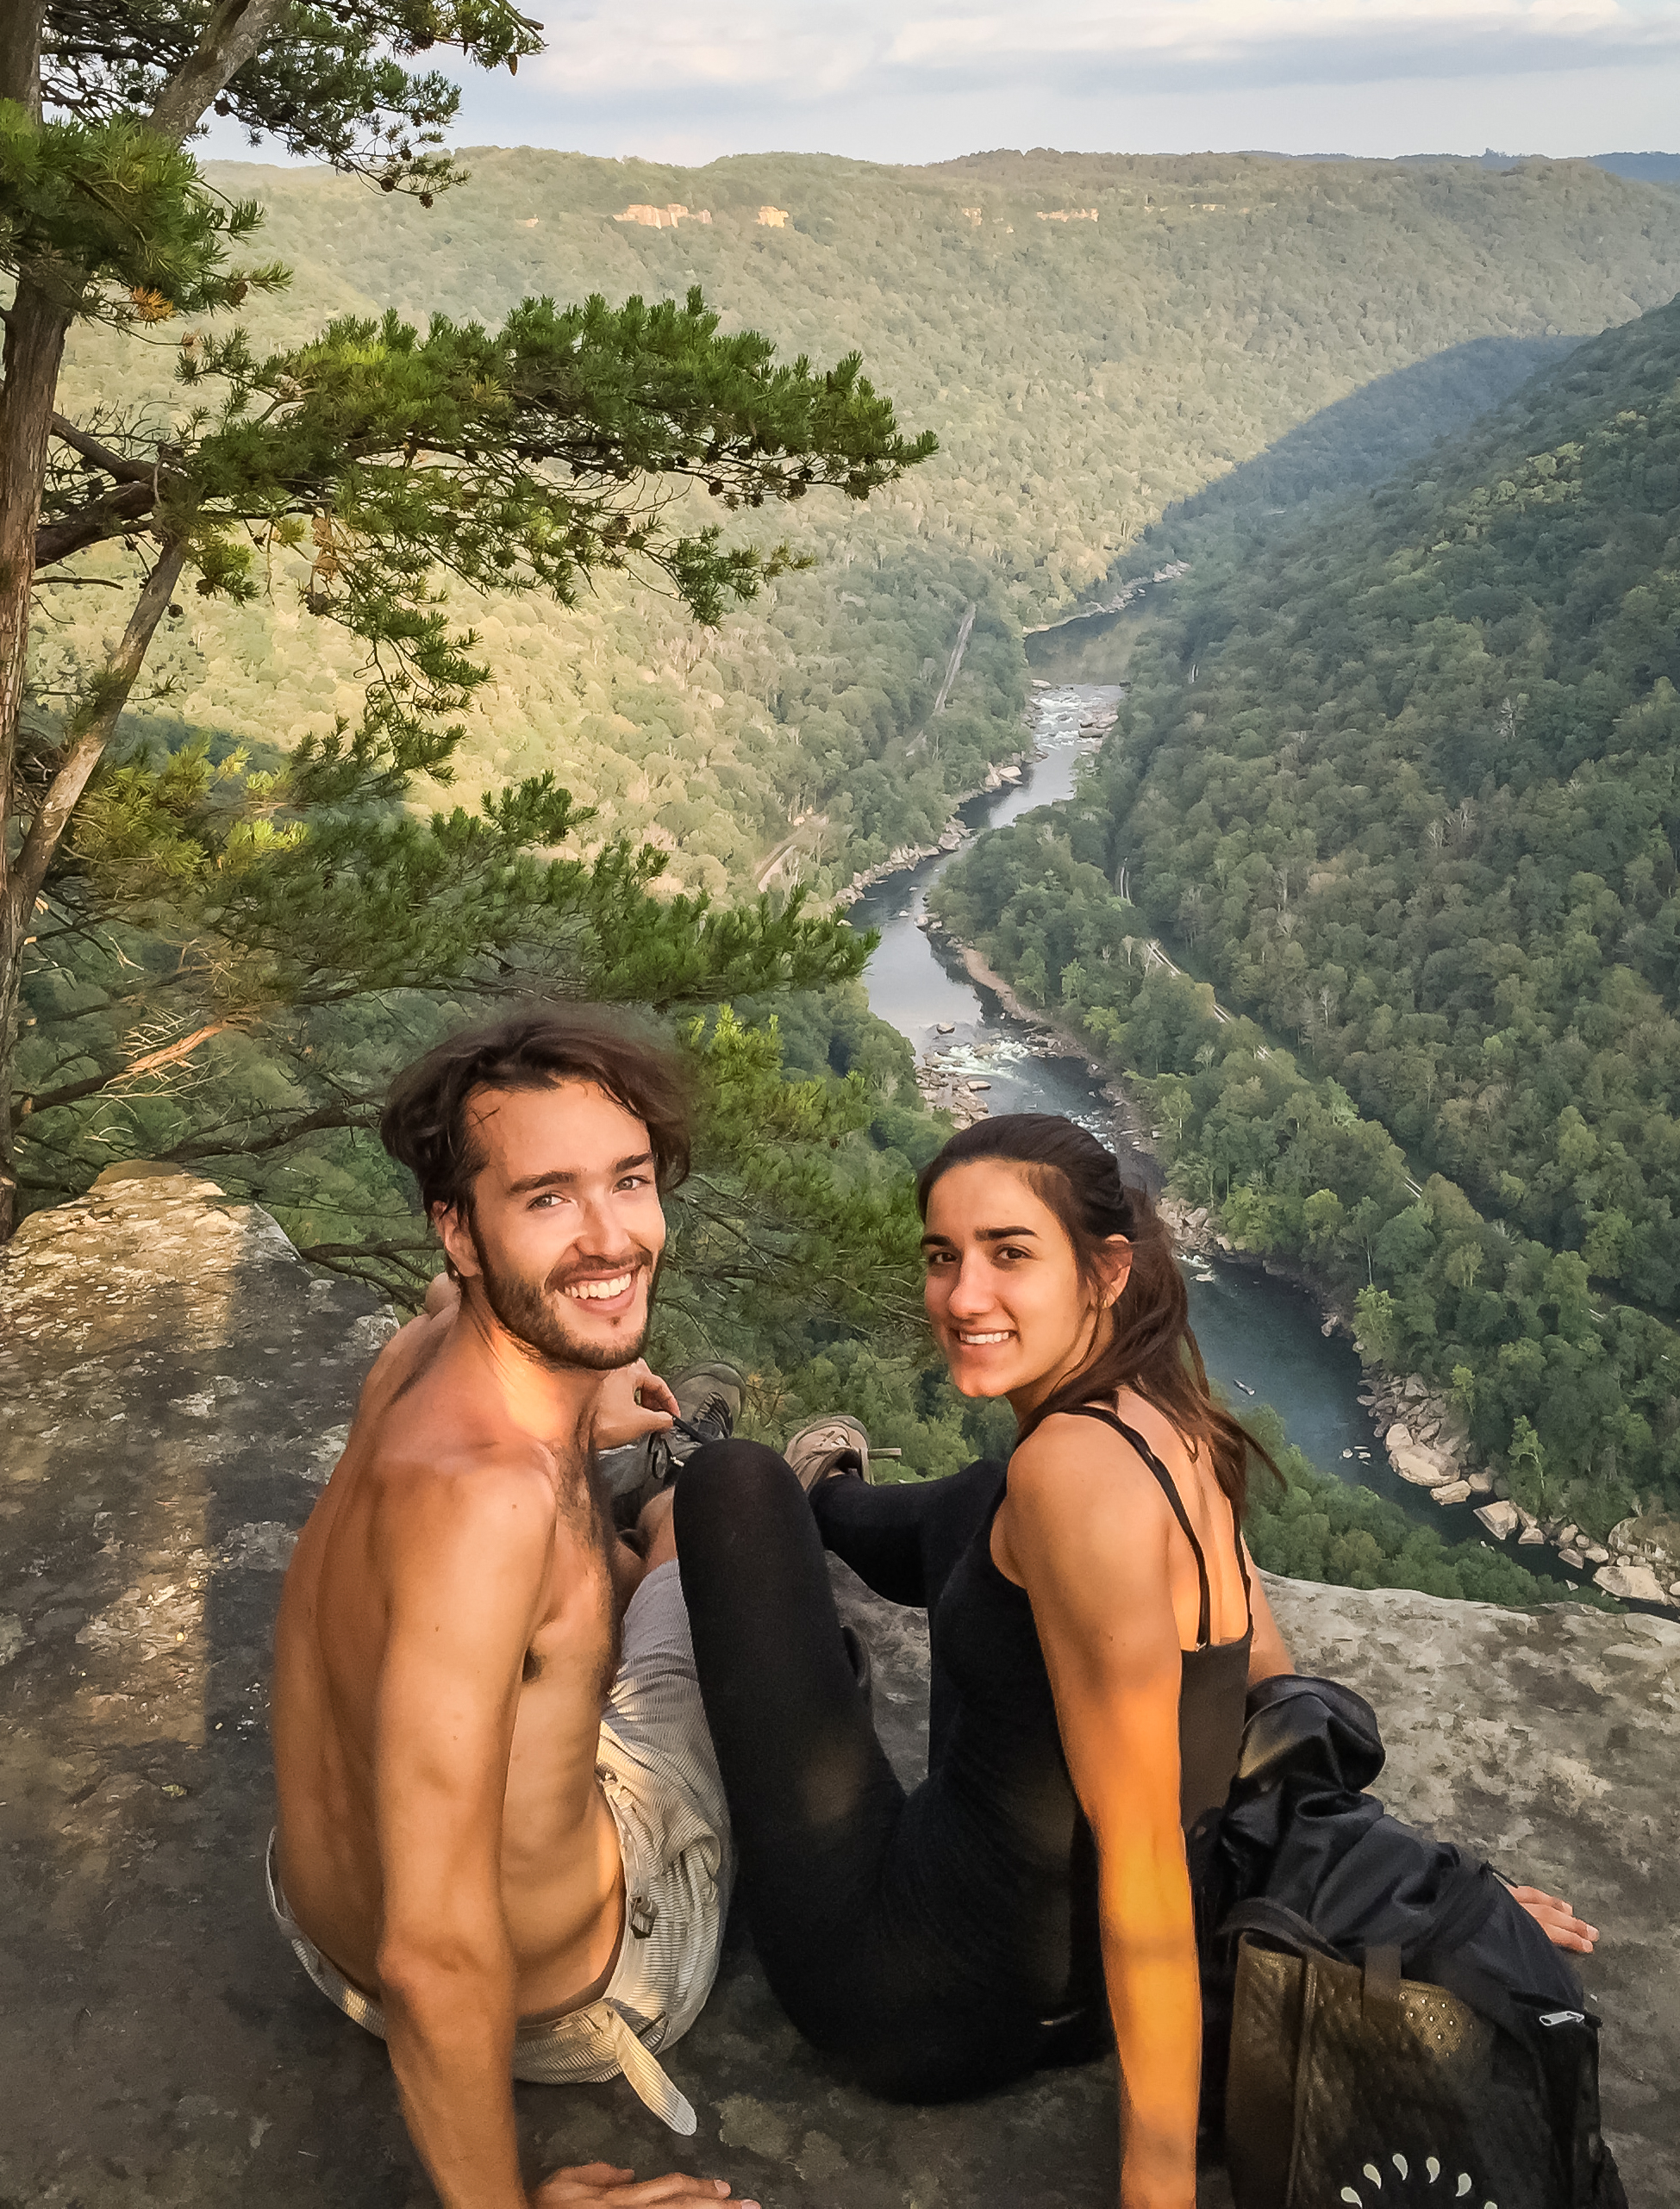 Overlook in the Endless Wall trail, New River Gorge